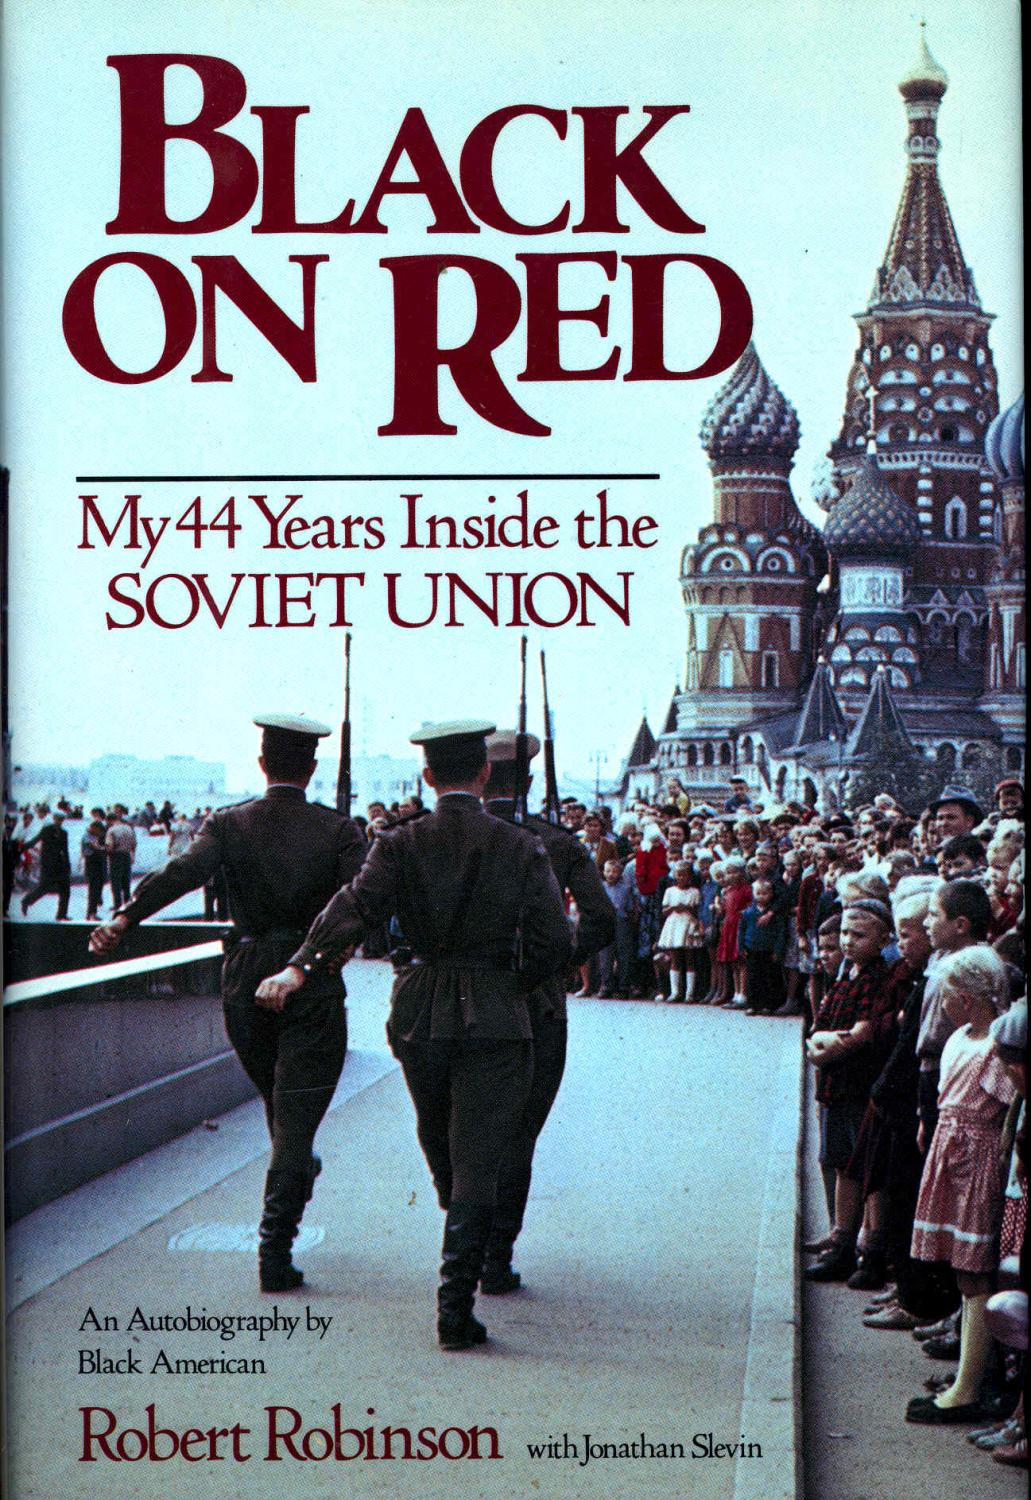 Cover of the book Black on Red: My 44 Years Inside the Soviet Union by Robert Robinson